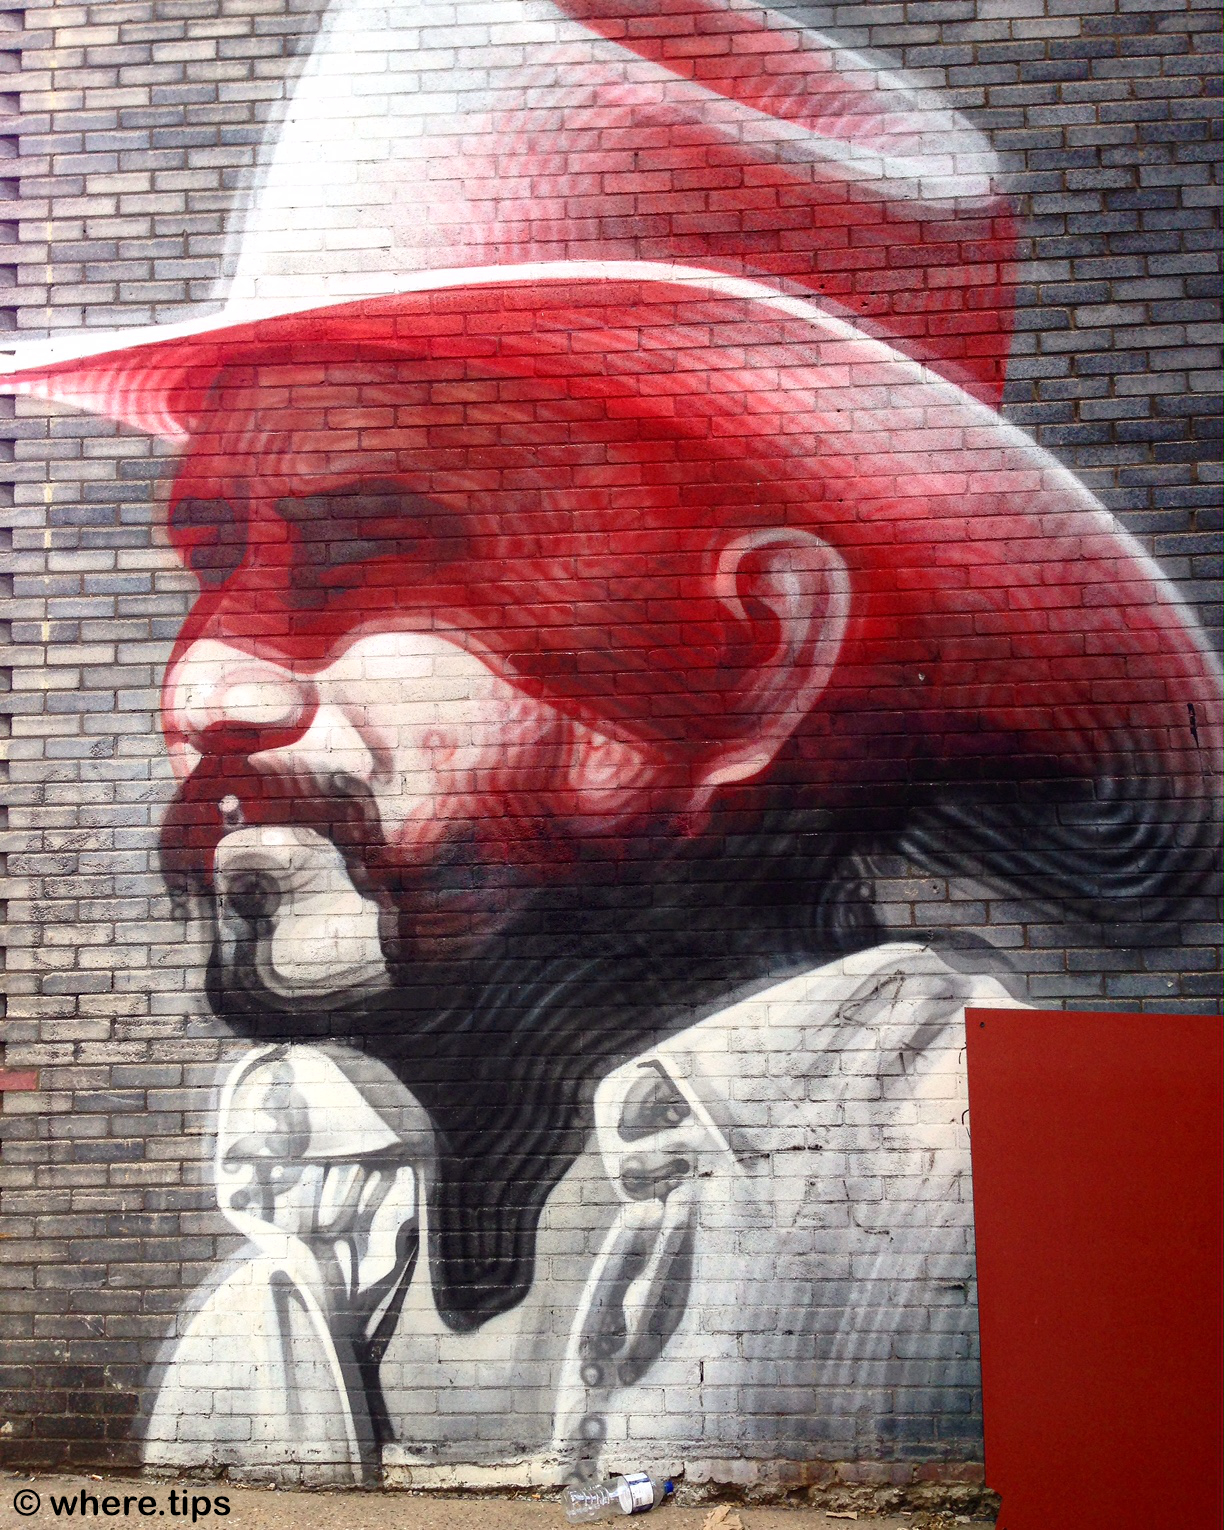 Man with Stetson, Hewett Street, London by where.tips